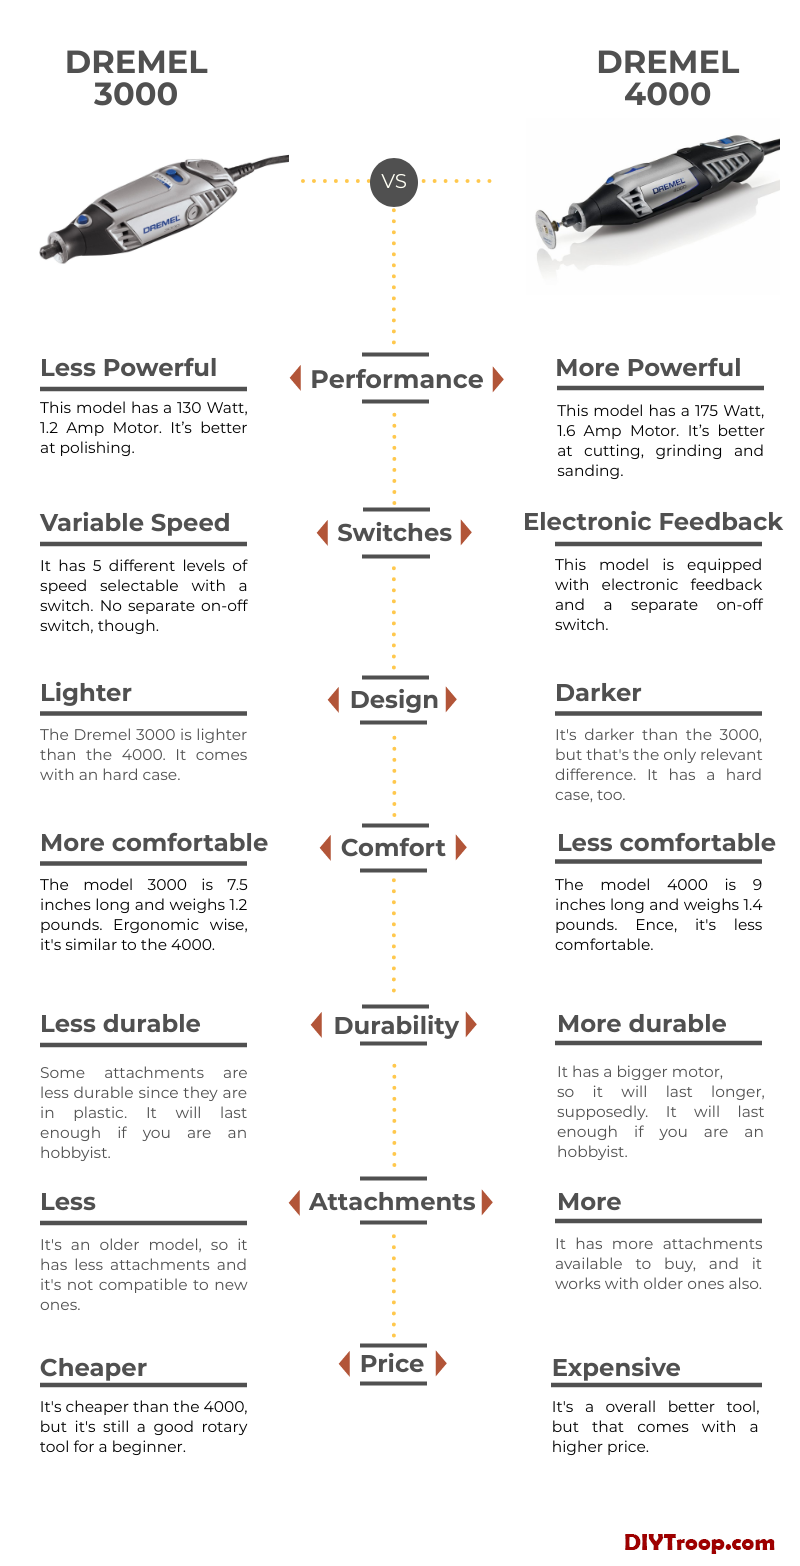 Dremel 3000 vs 4000 infographic